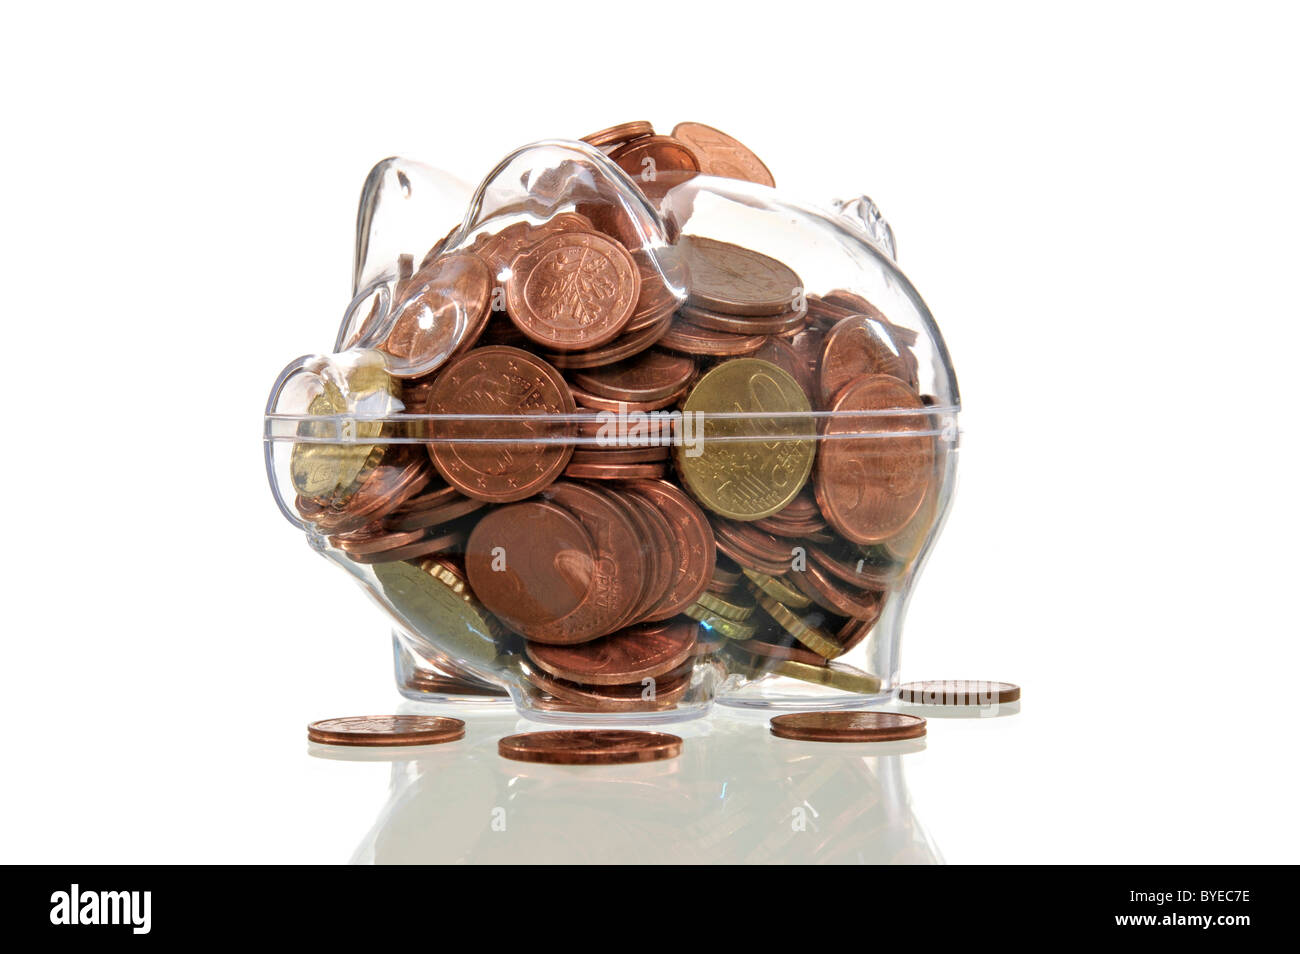 Over-filled transparent piggy bank, symbolic image for full coffers - Stock Image